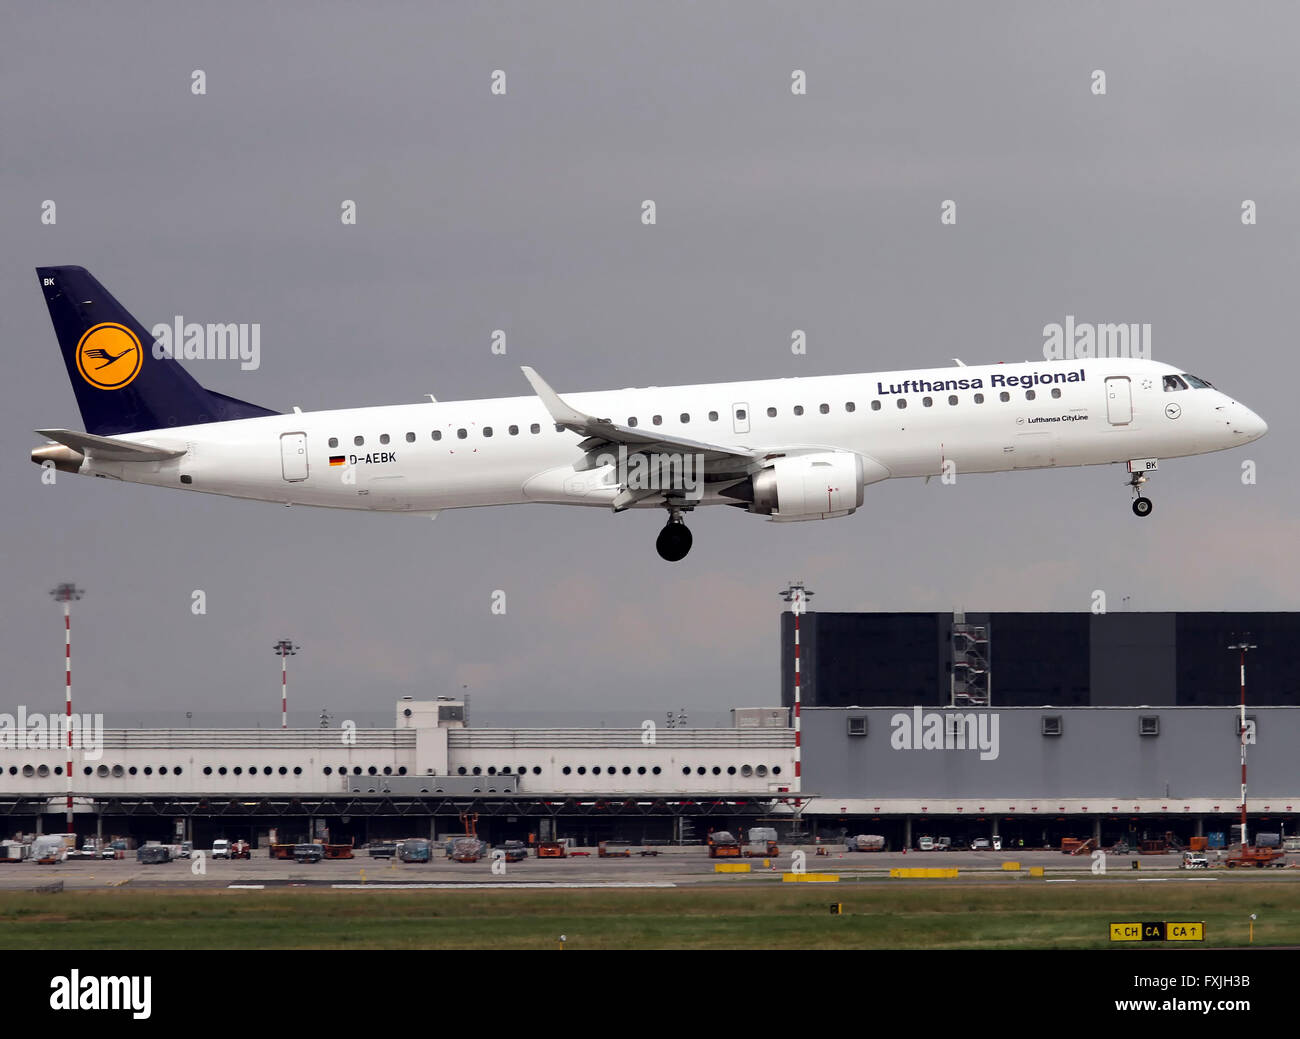 Lufthansa Cityline Embraer Erj 195 Stock Photo Alamy